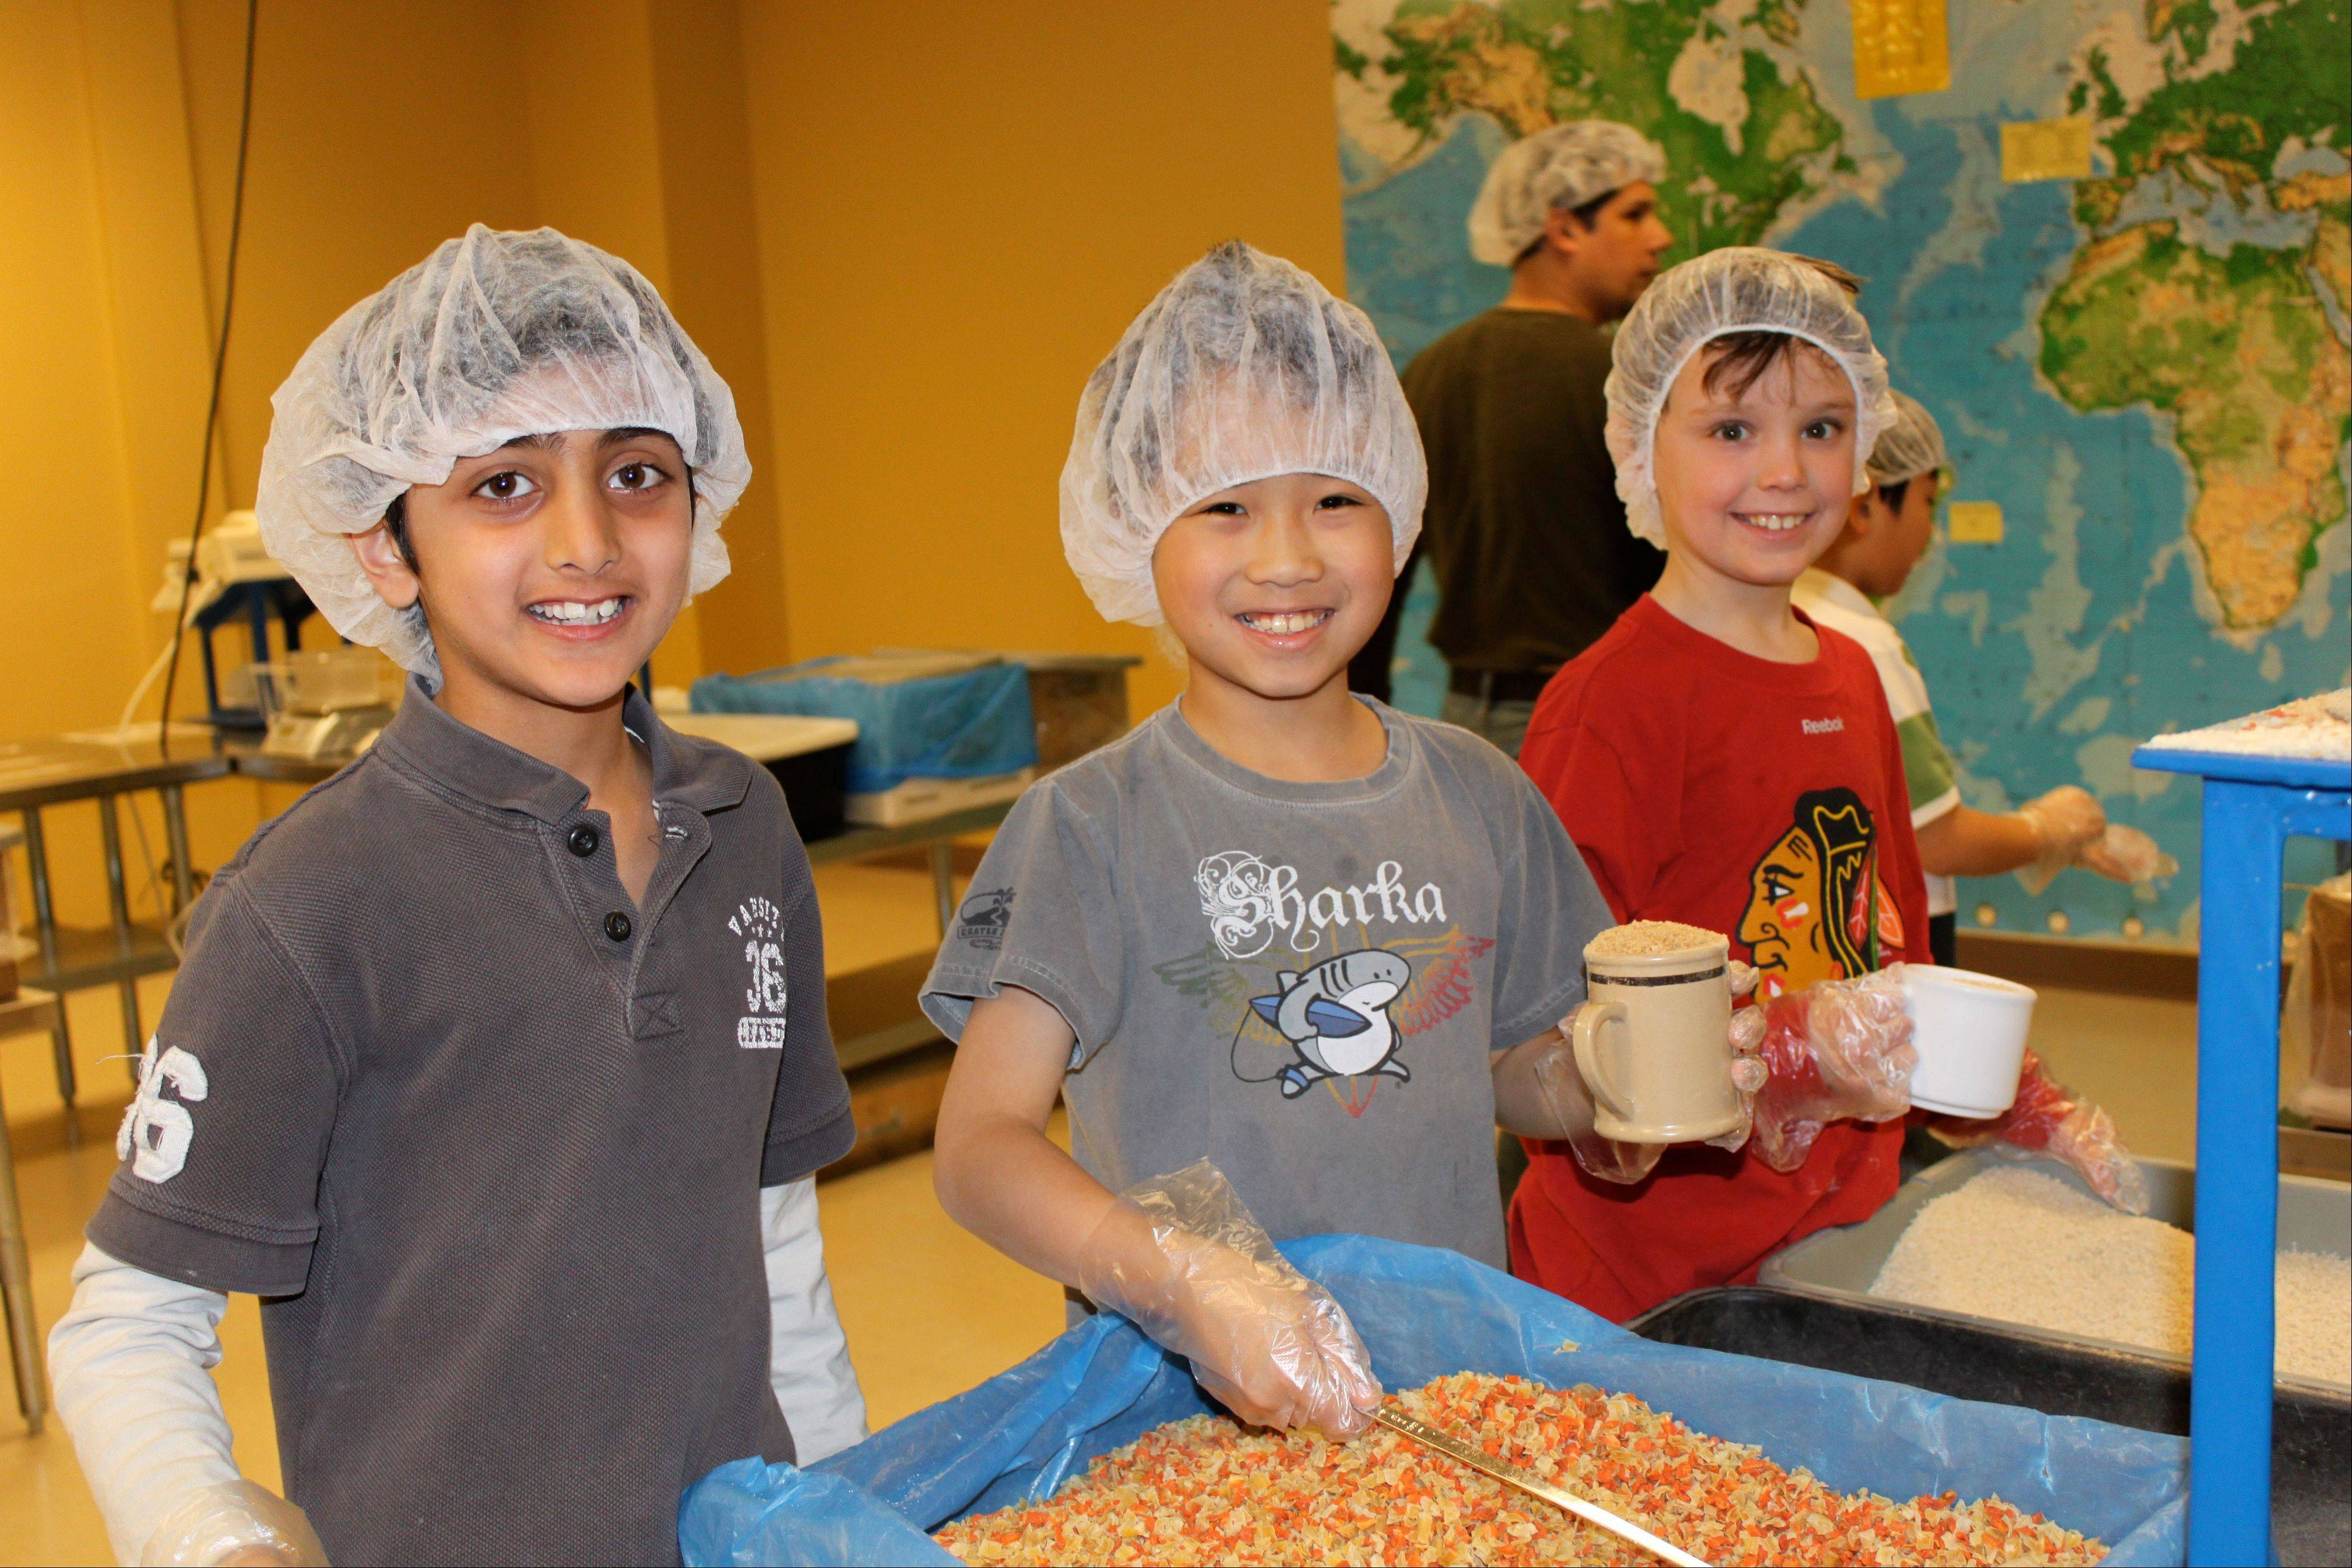 Summer volunteers needed for Feed My Starving Children